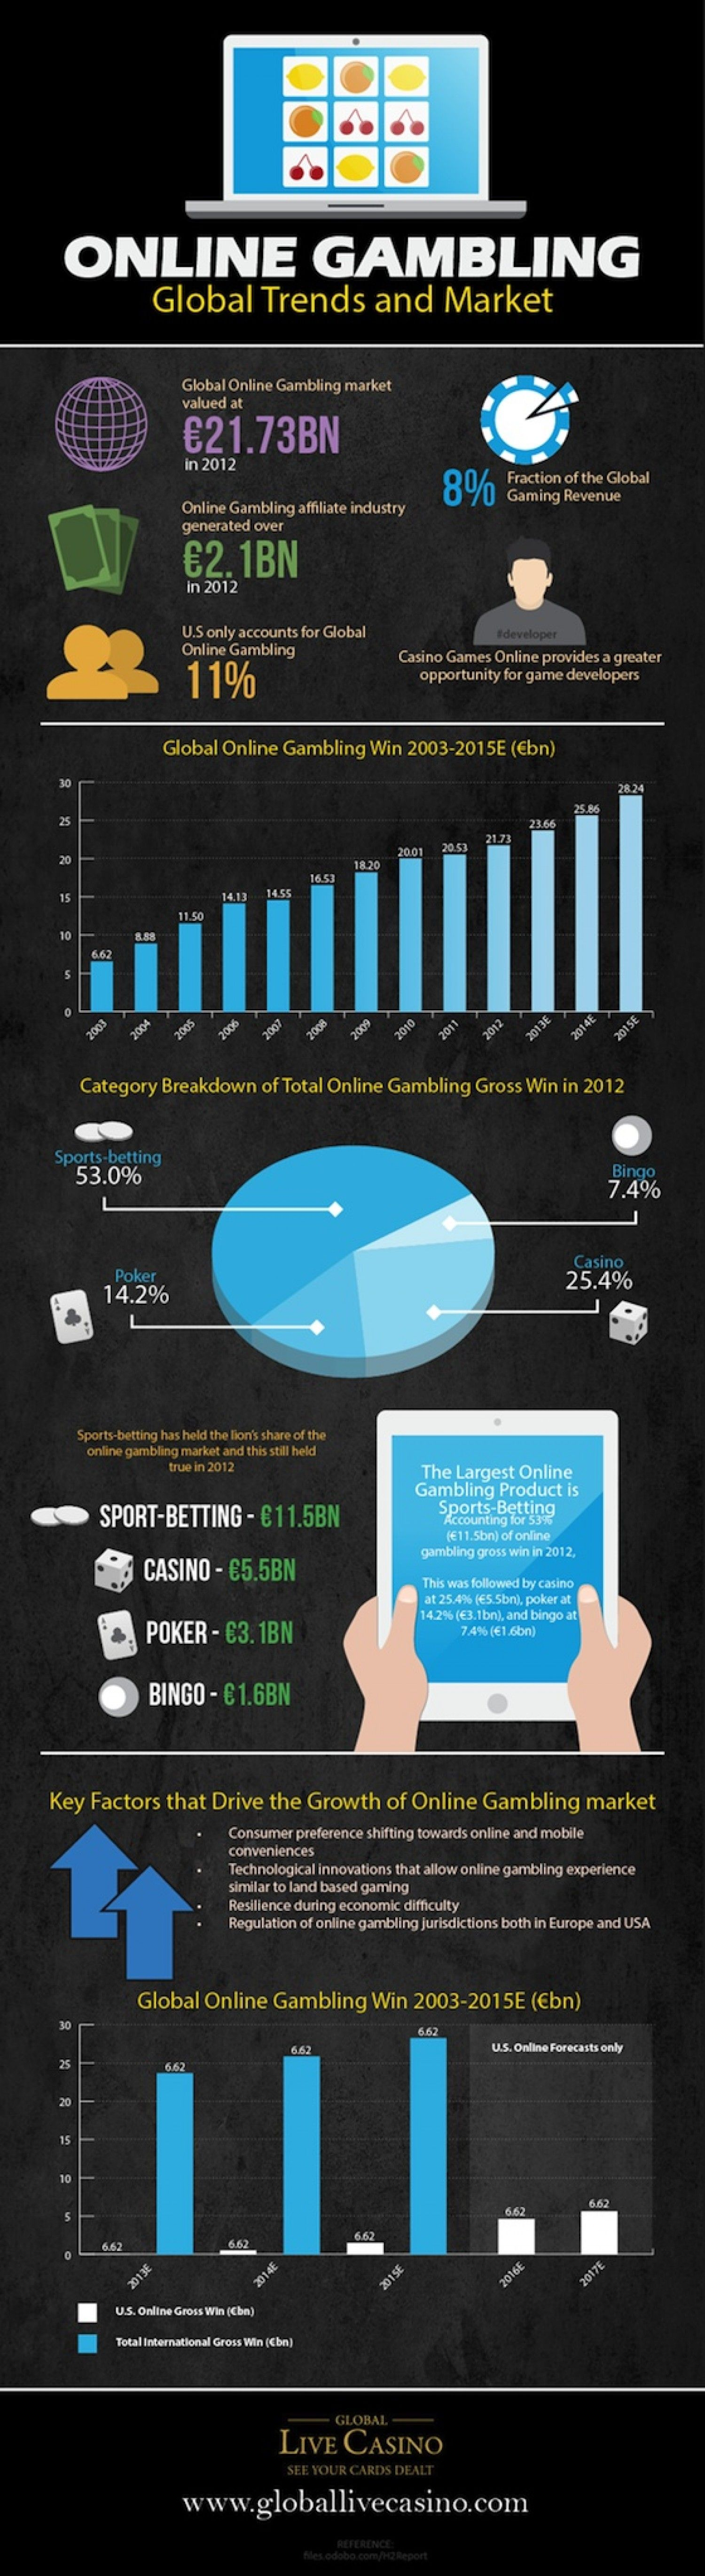 Online Gambling Global Trends and Market Infographic